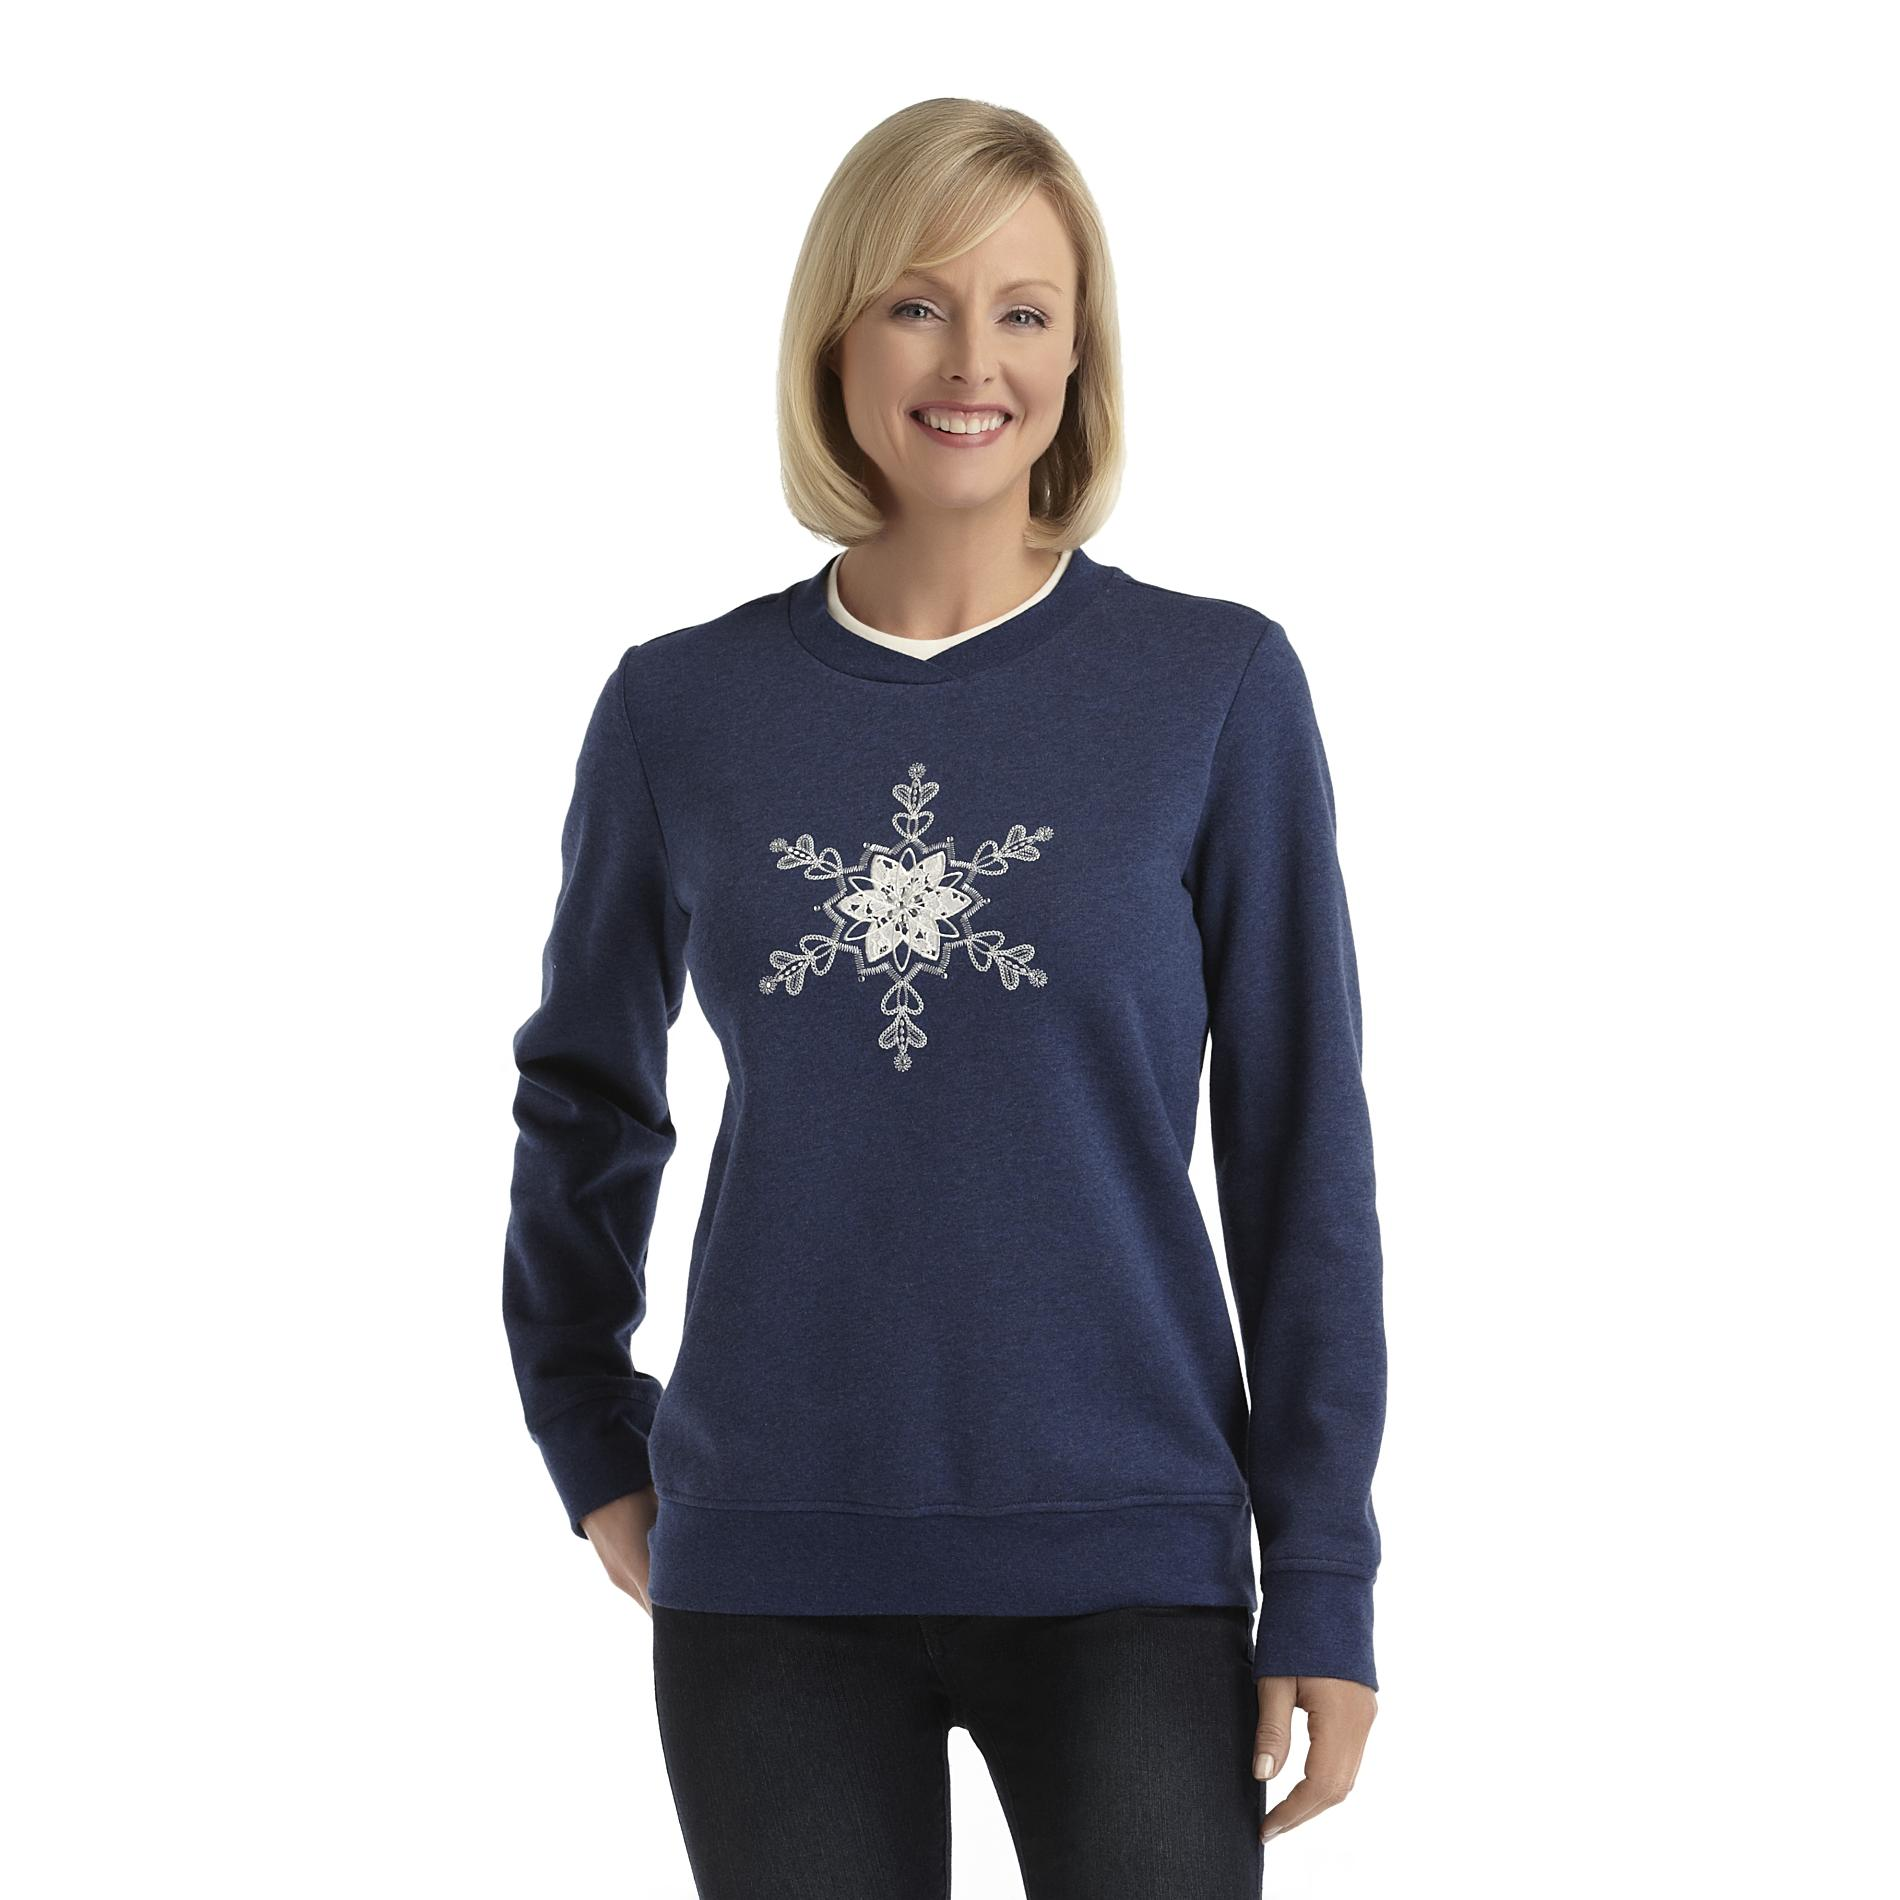 Laura Scott Women's Fleece Holiday Sweatshirt - Snowflake at Sears.com